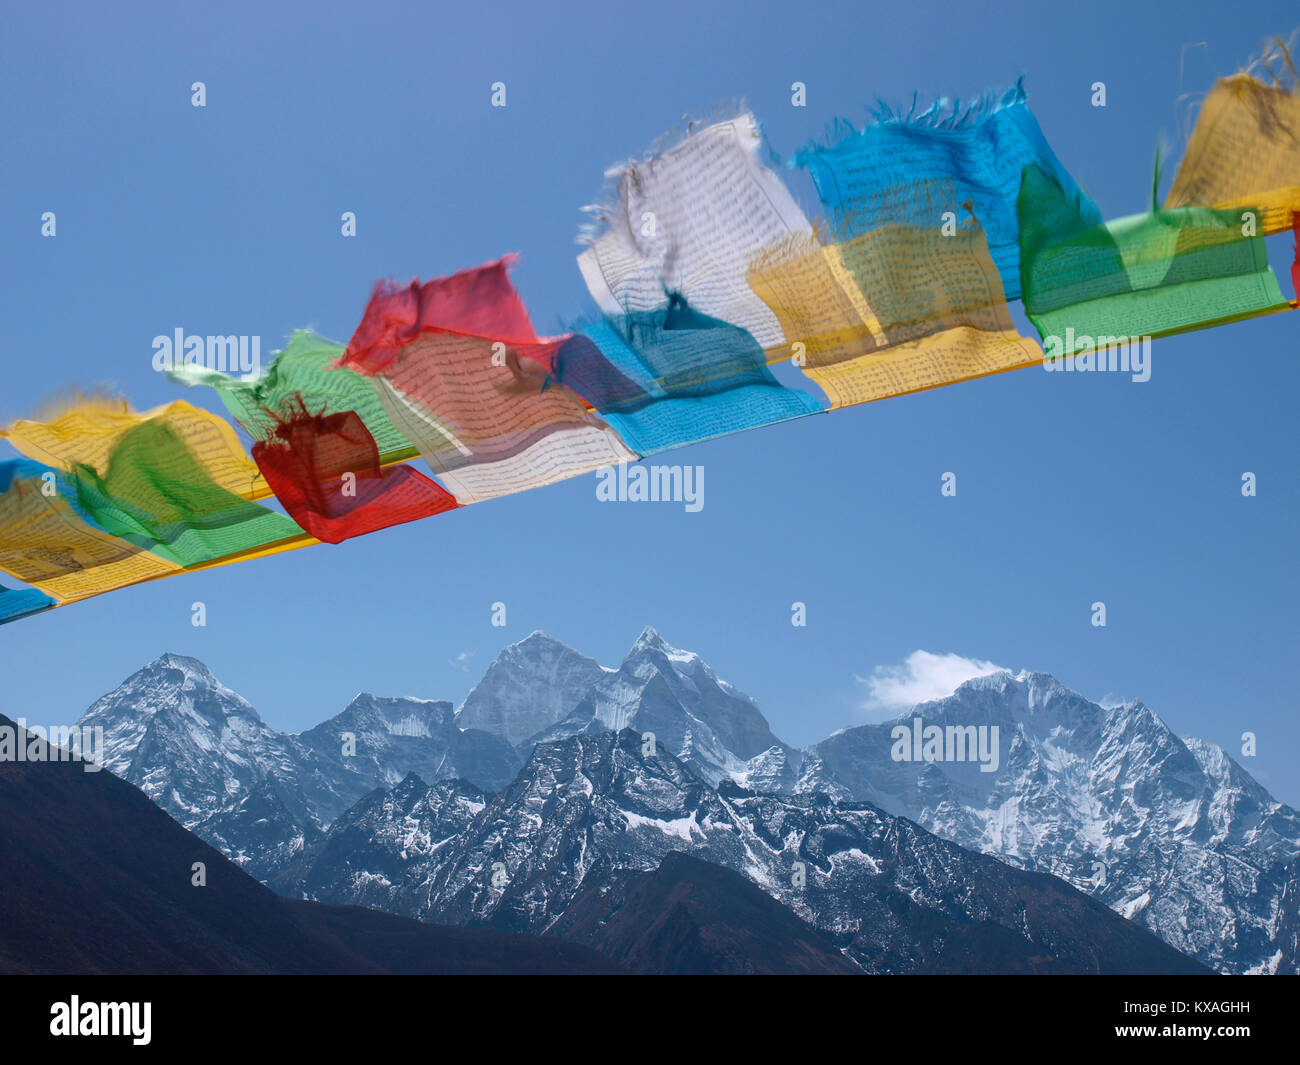 Buddhist prayer flags waving in wind Himalayan peaks of Mount Everest region in background, Lukla, Khumbu, Nepal - Stock Image